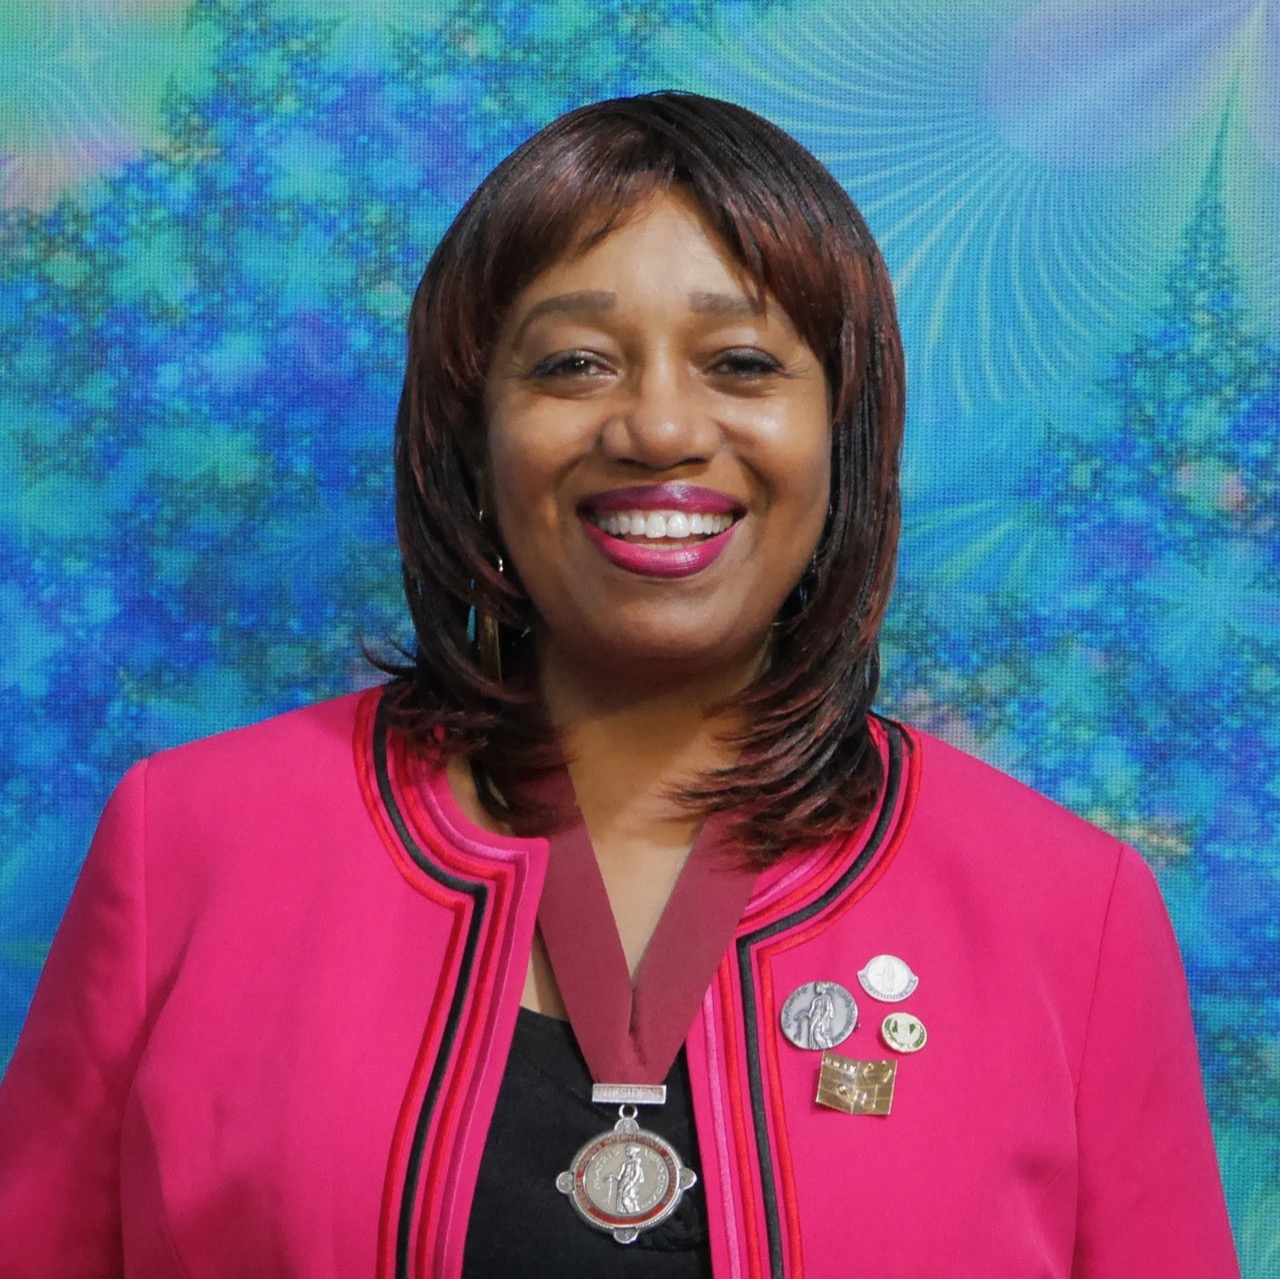 Dr Eleanor Nwadinobi